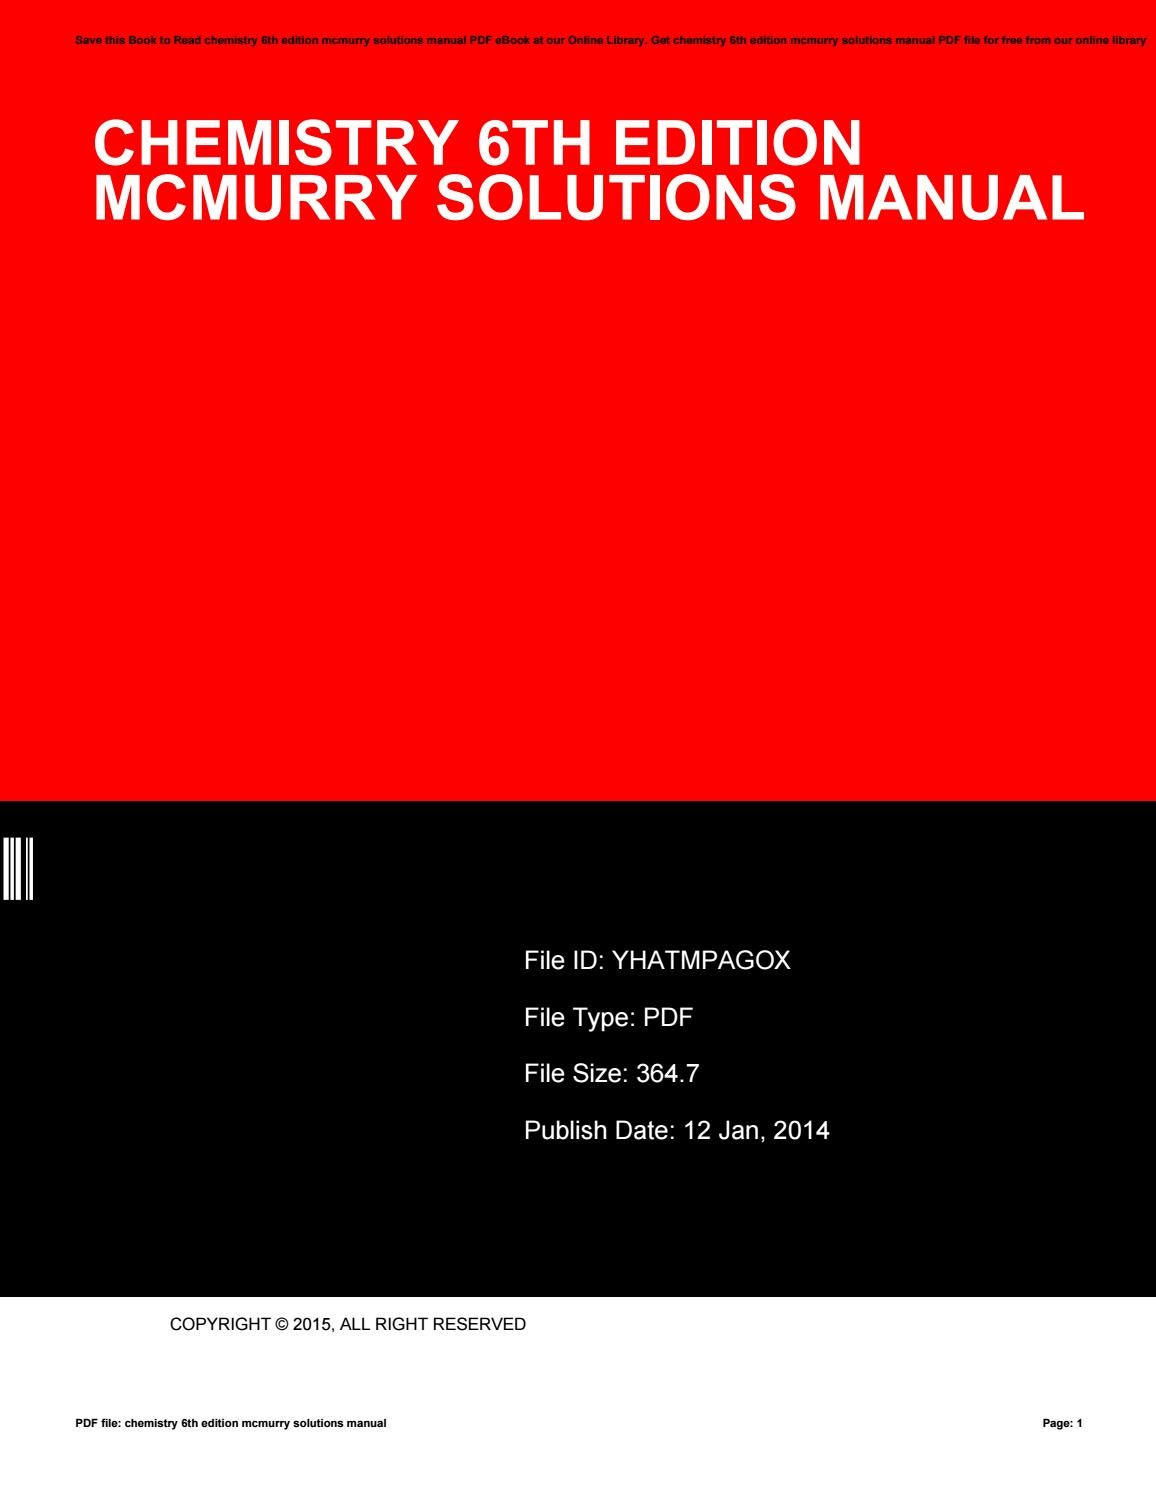 Chemistry 6th edition mcmurry solutions manual by KristenCarlson3156 - issuu